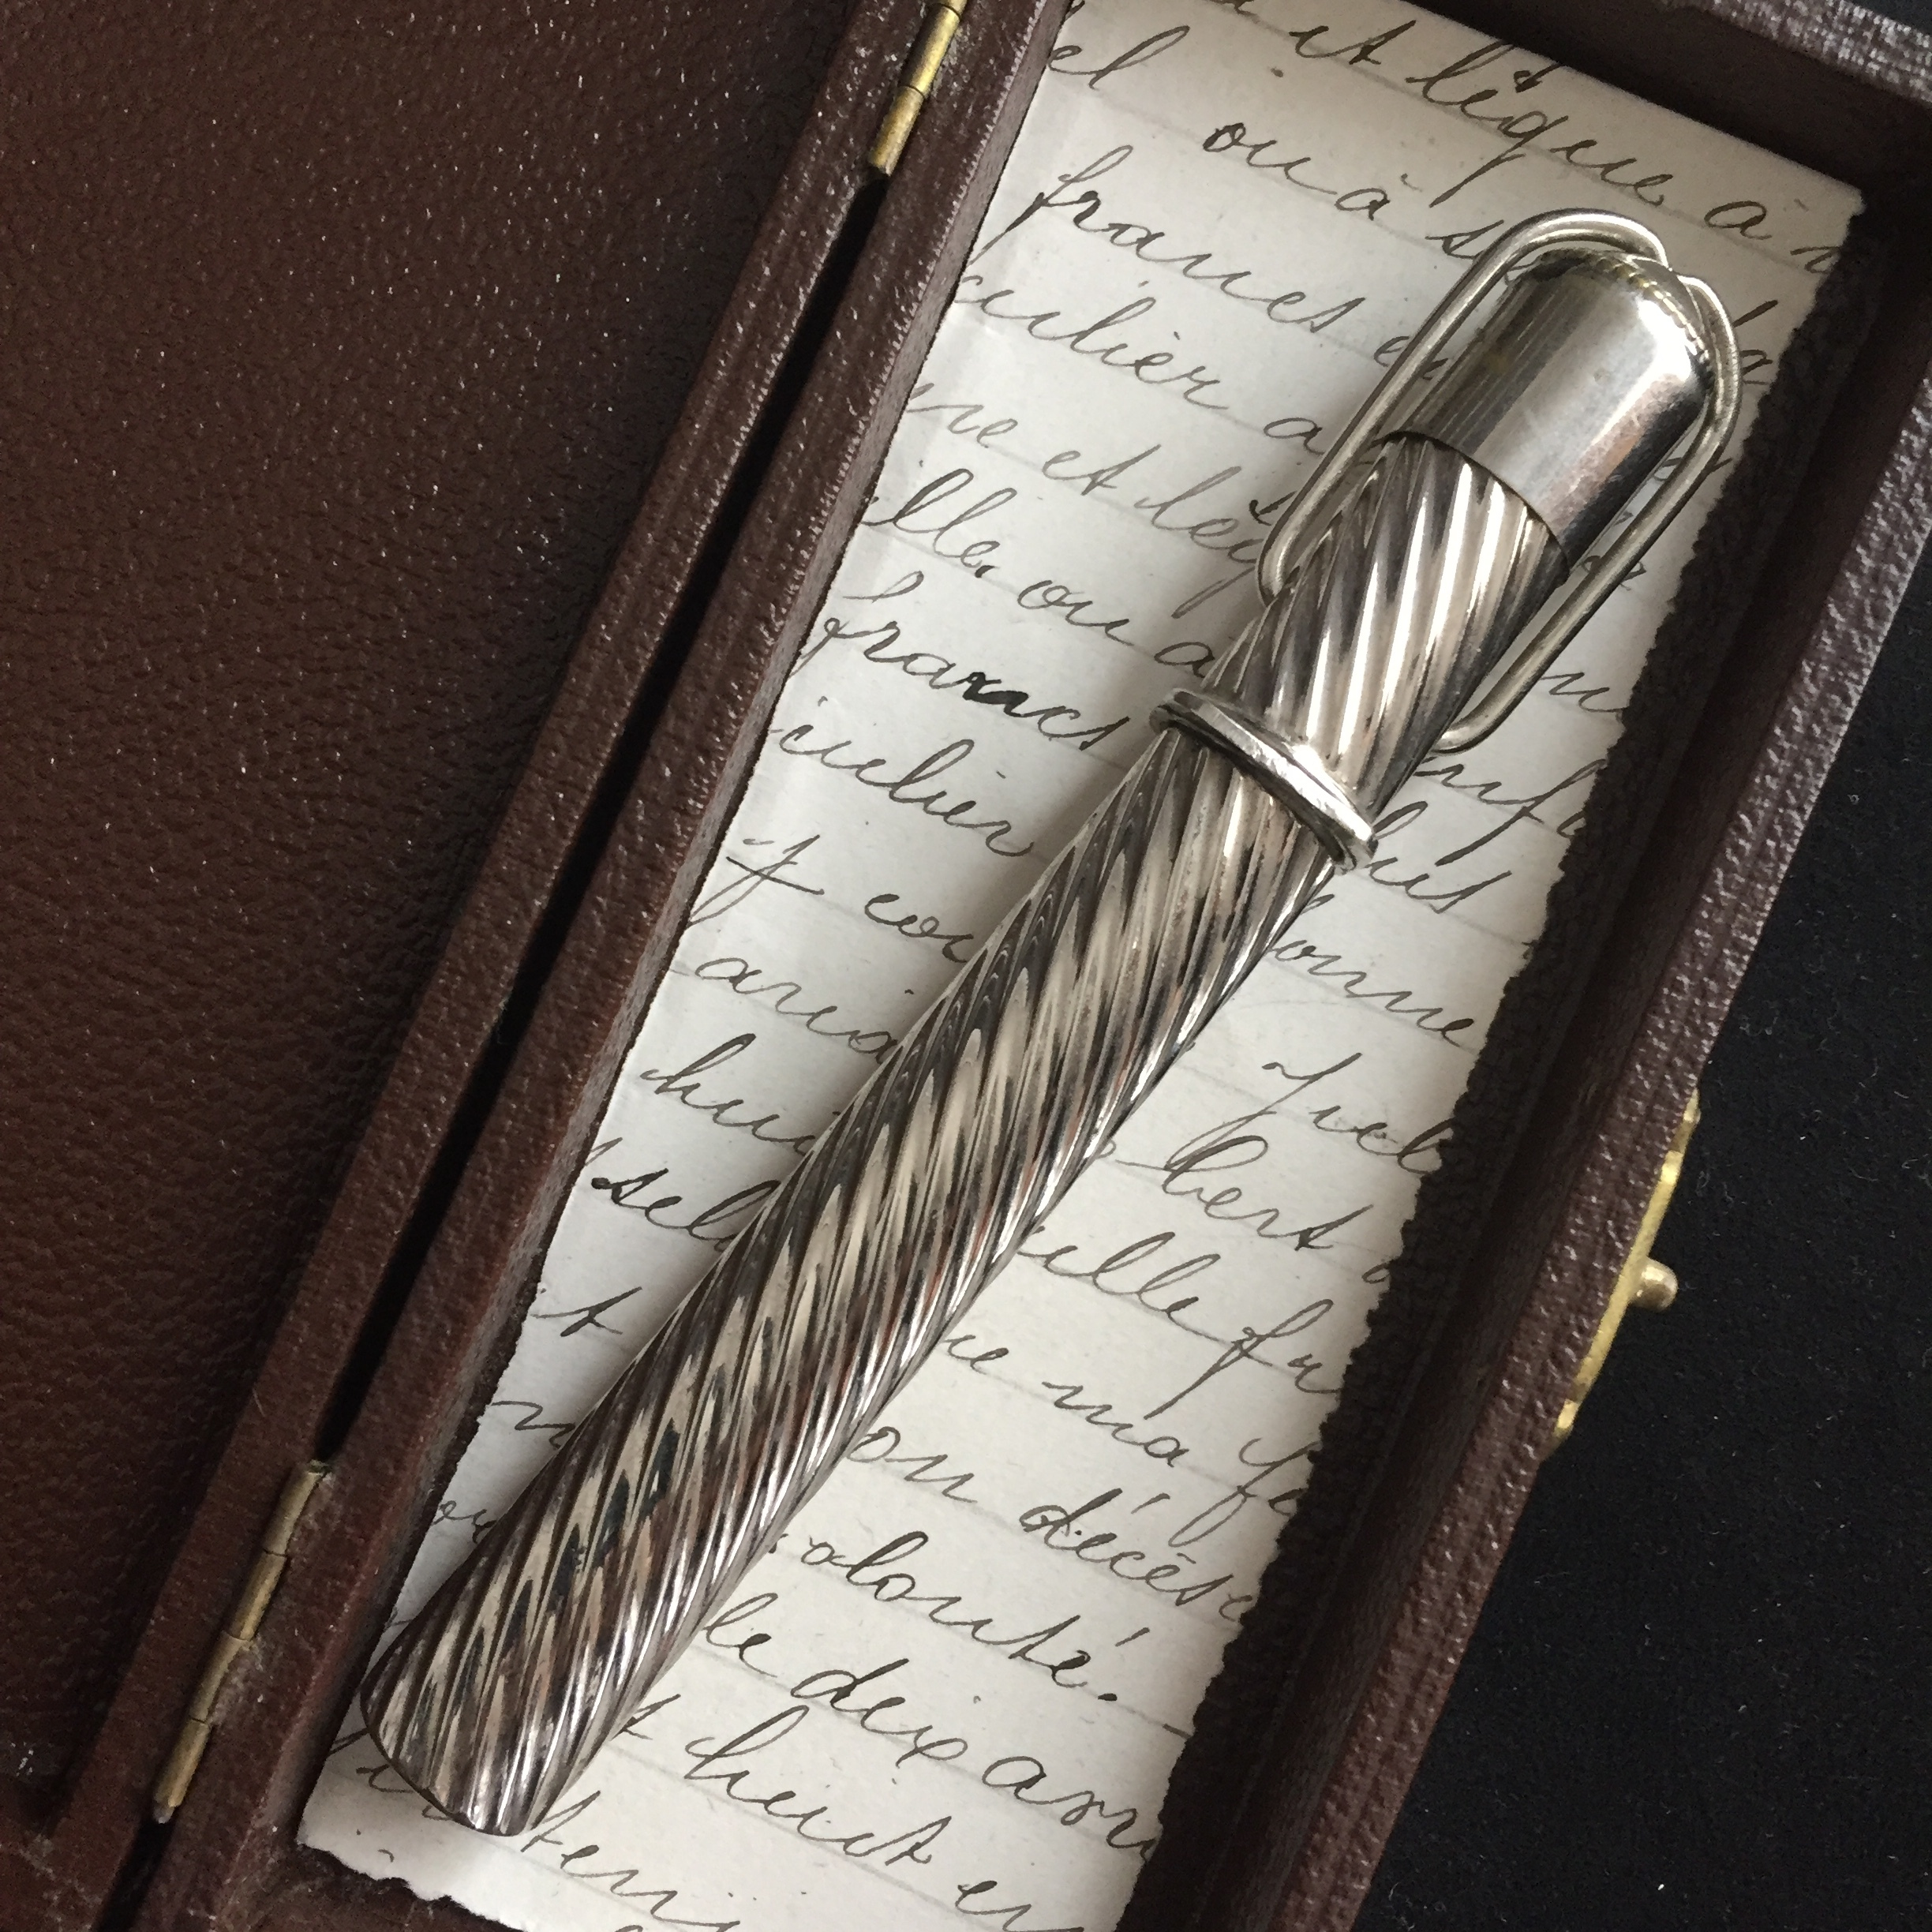 Antique portable calligraphy set